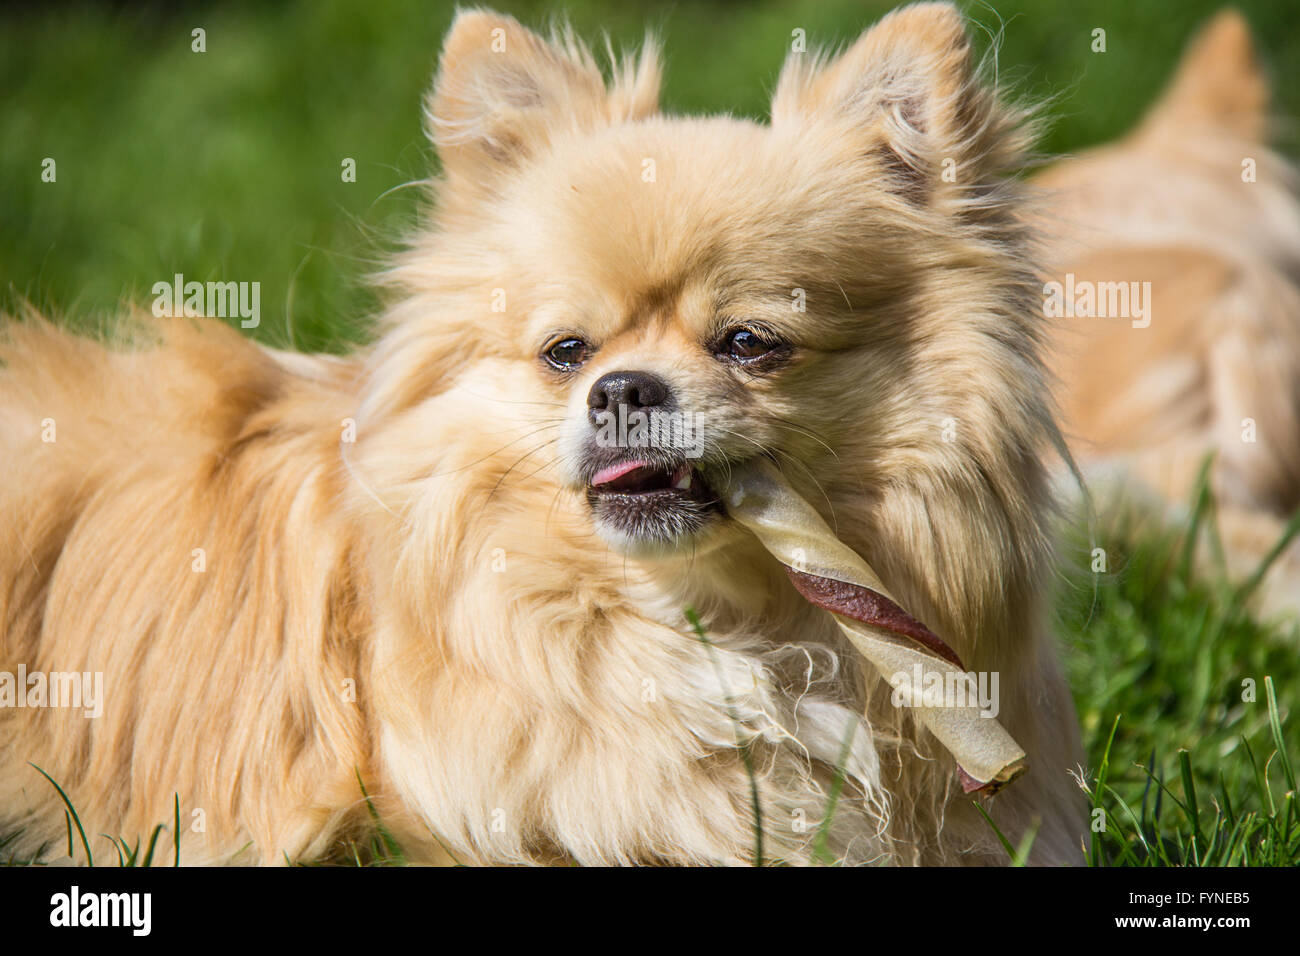 Pomeranian chiwawa pomchi doggie puppy doggie eating treat - Stock Image